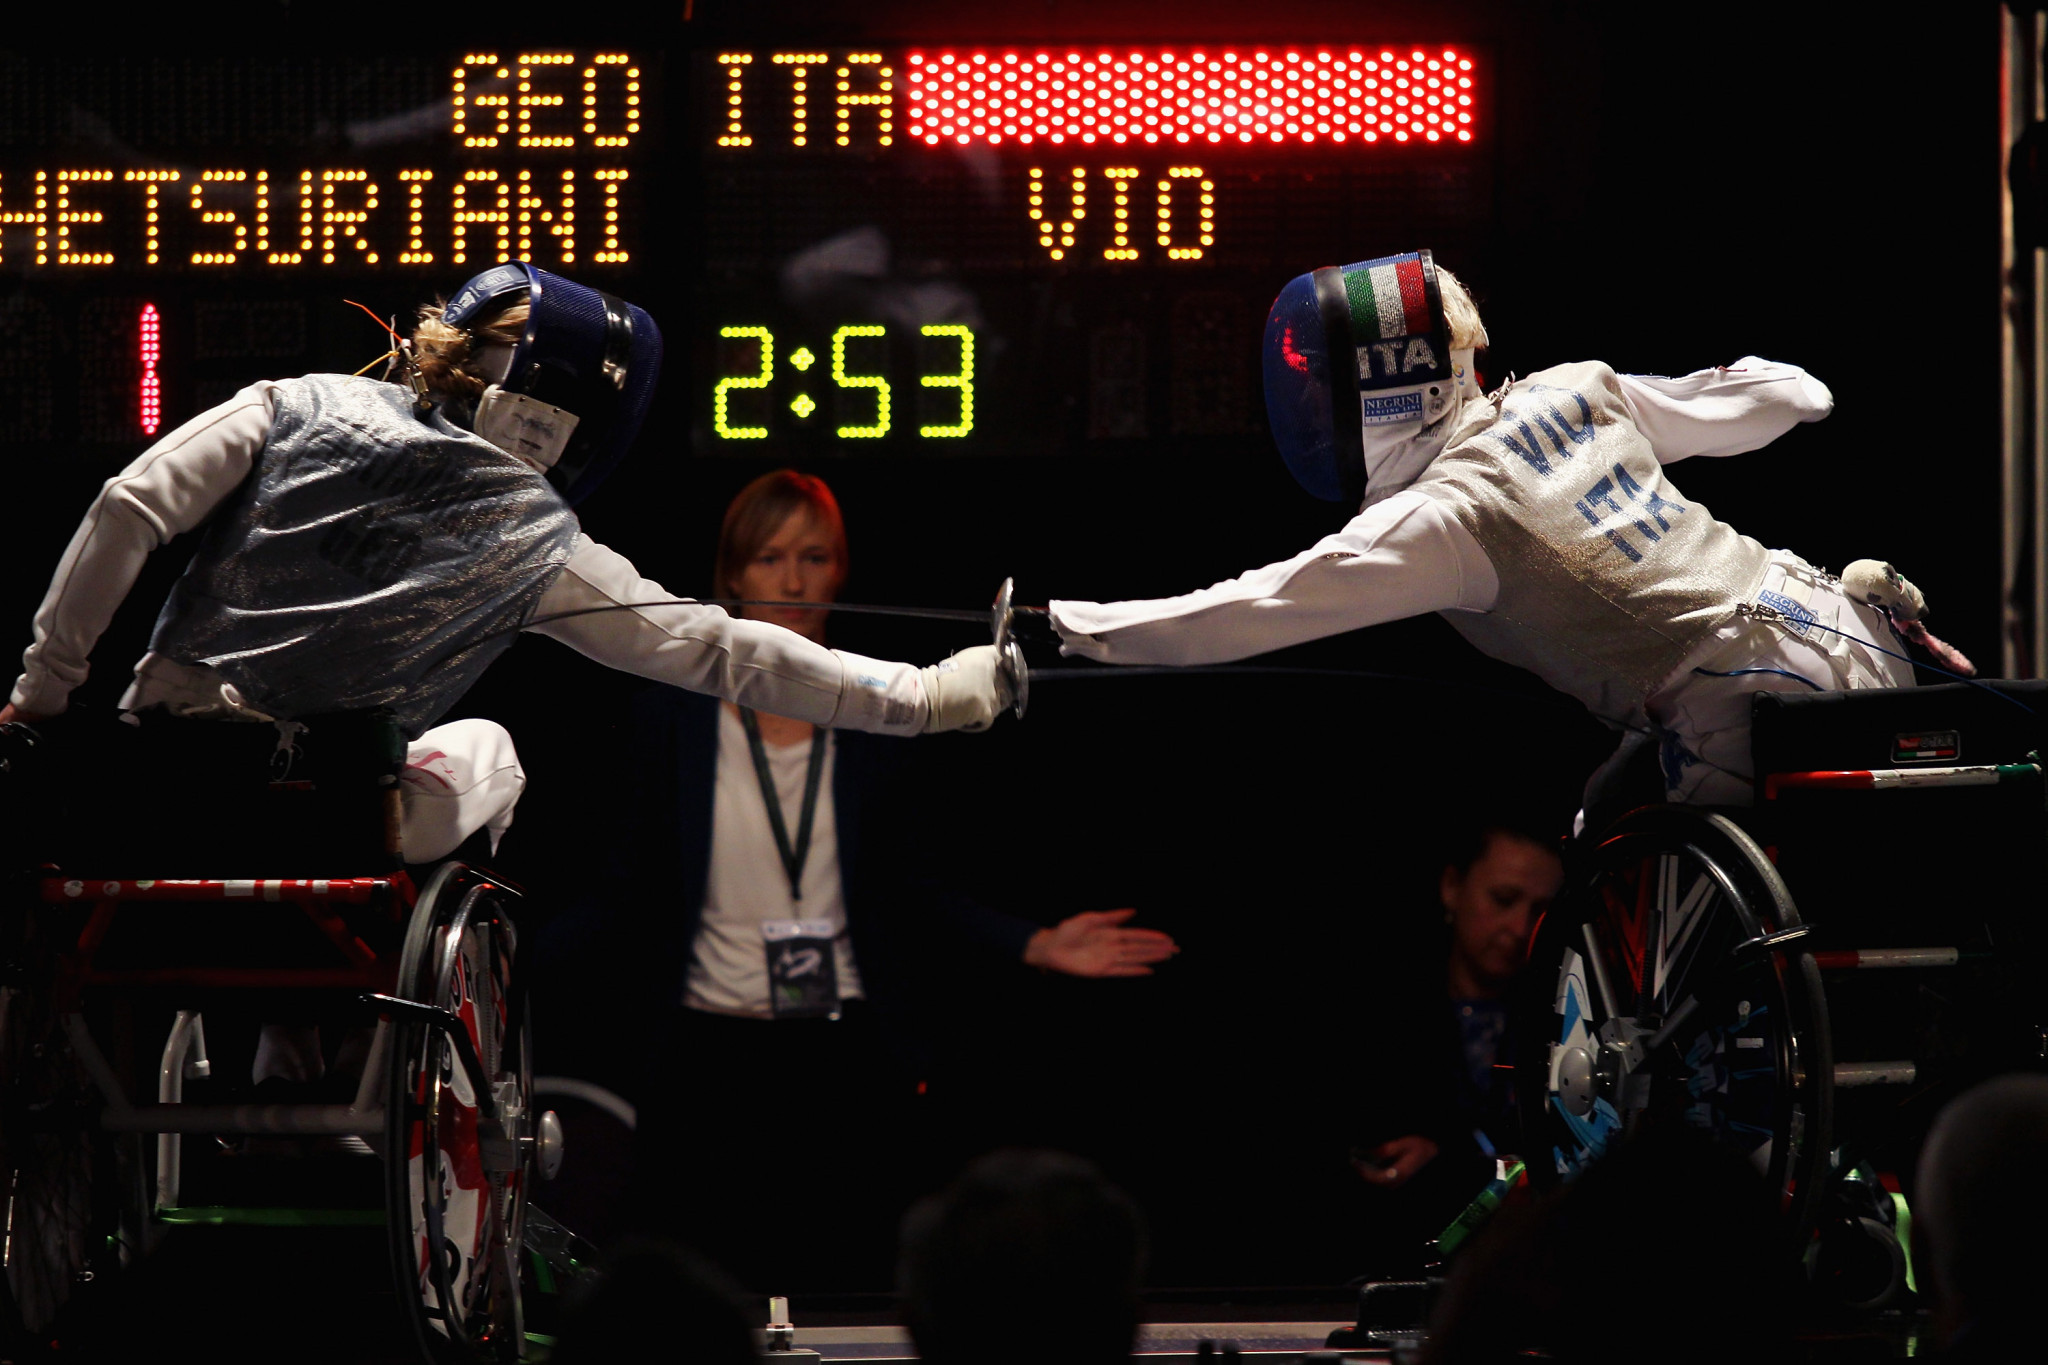 Georgia's first female wheelchair fencer and world champion Irma Khetsuriani, left, is due to compete in the sabre category B at the IWAS Wheelchair Fencing World Cup in Tbilisi ©Getty Images